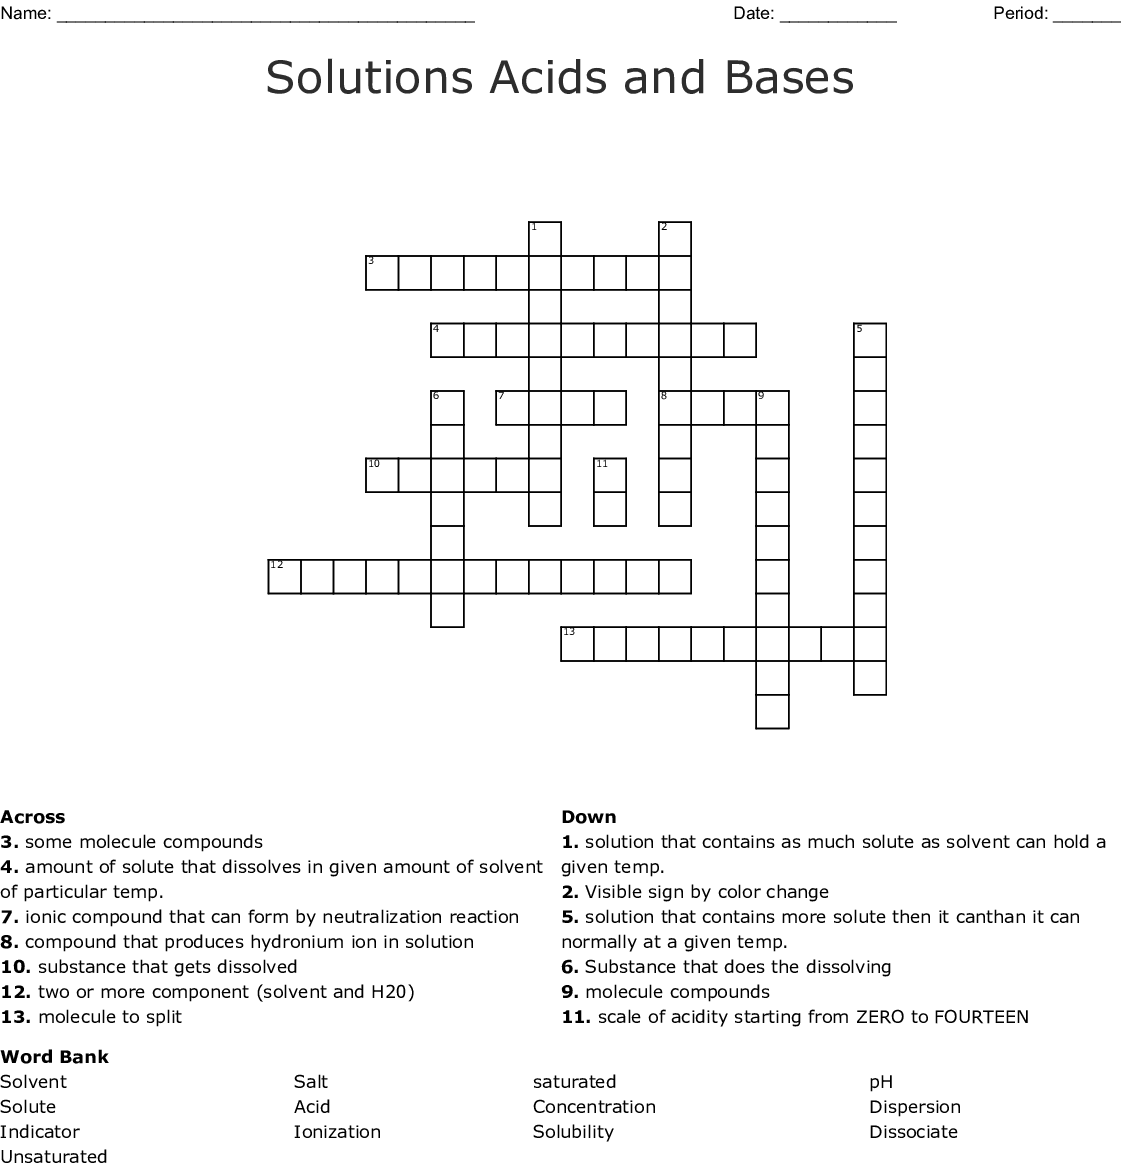 Acid And Bases Crossword